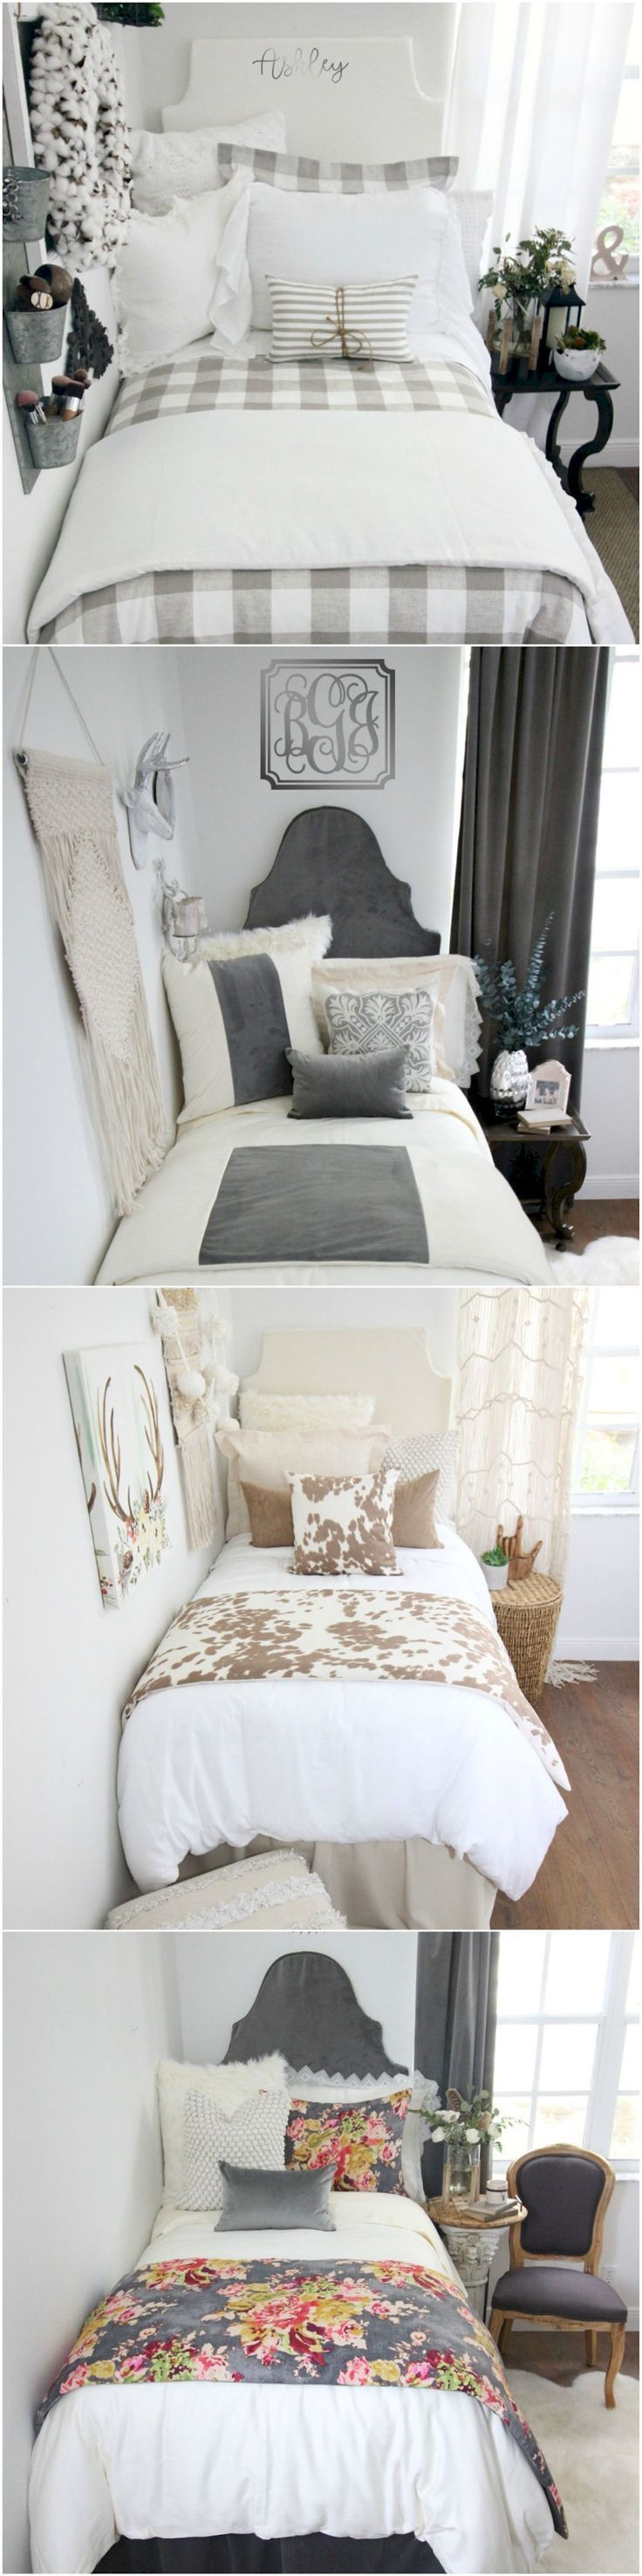 Gorgeous  Cute Dorm Room Decorating Ideas On A Budget Diyhomedecorcollege